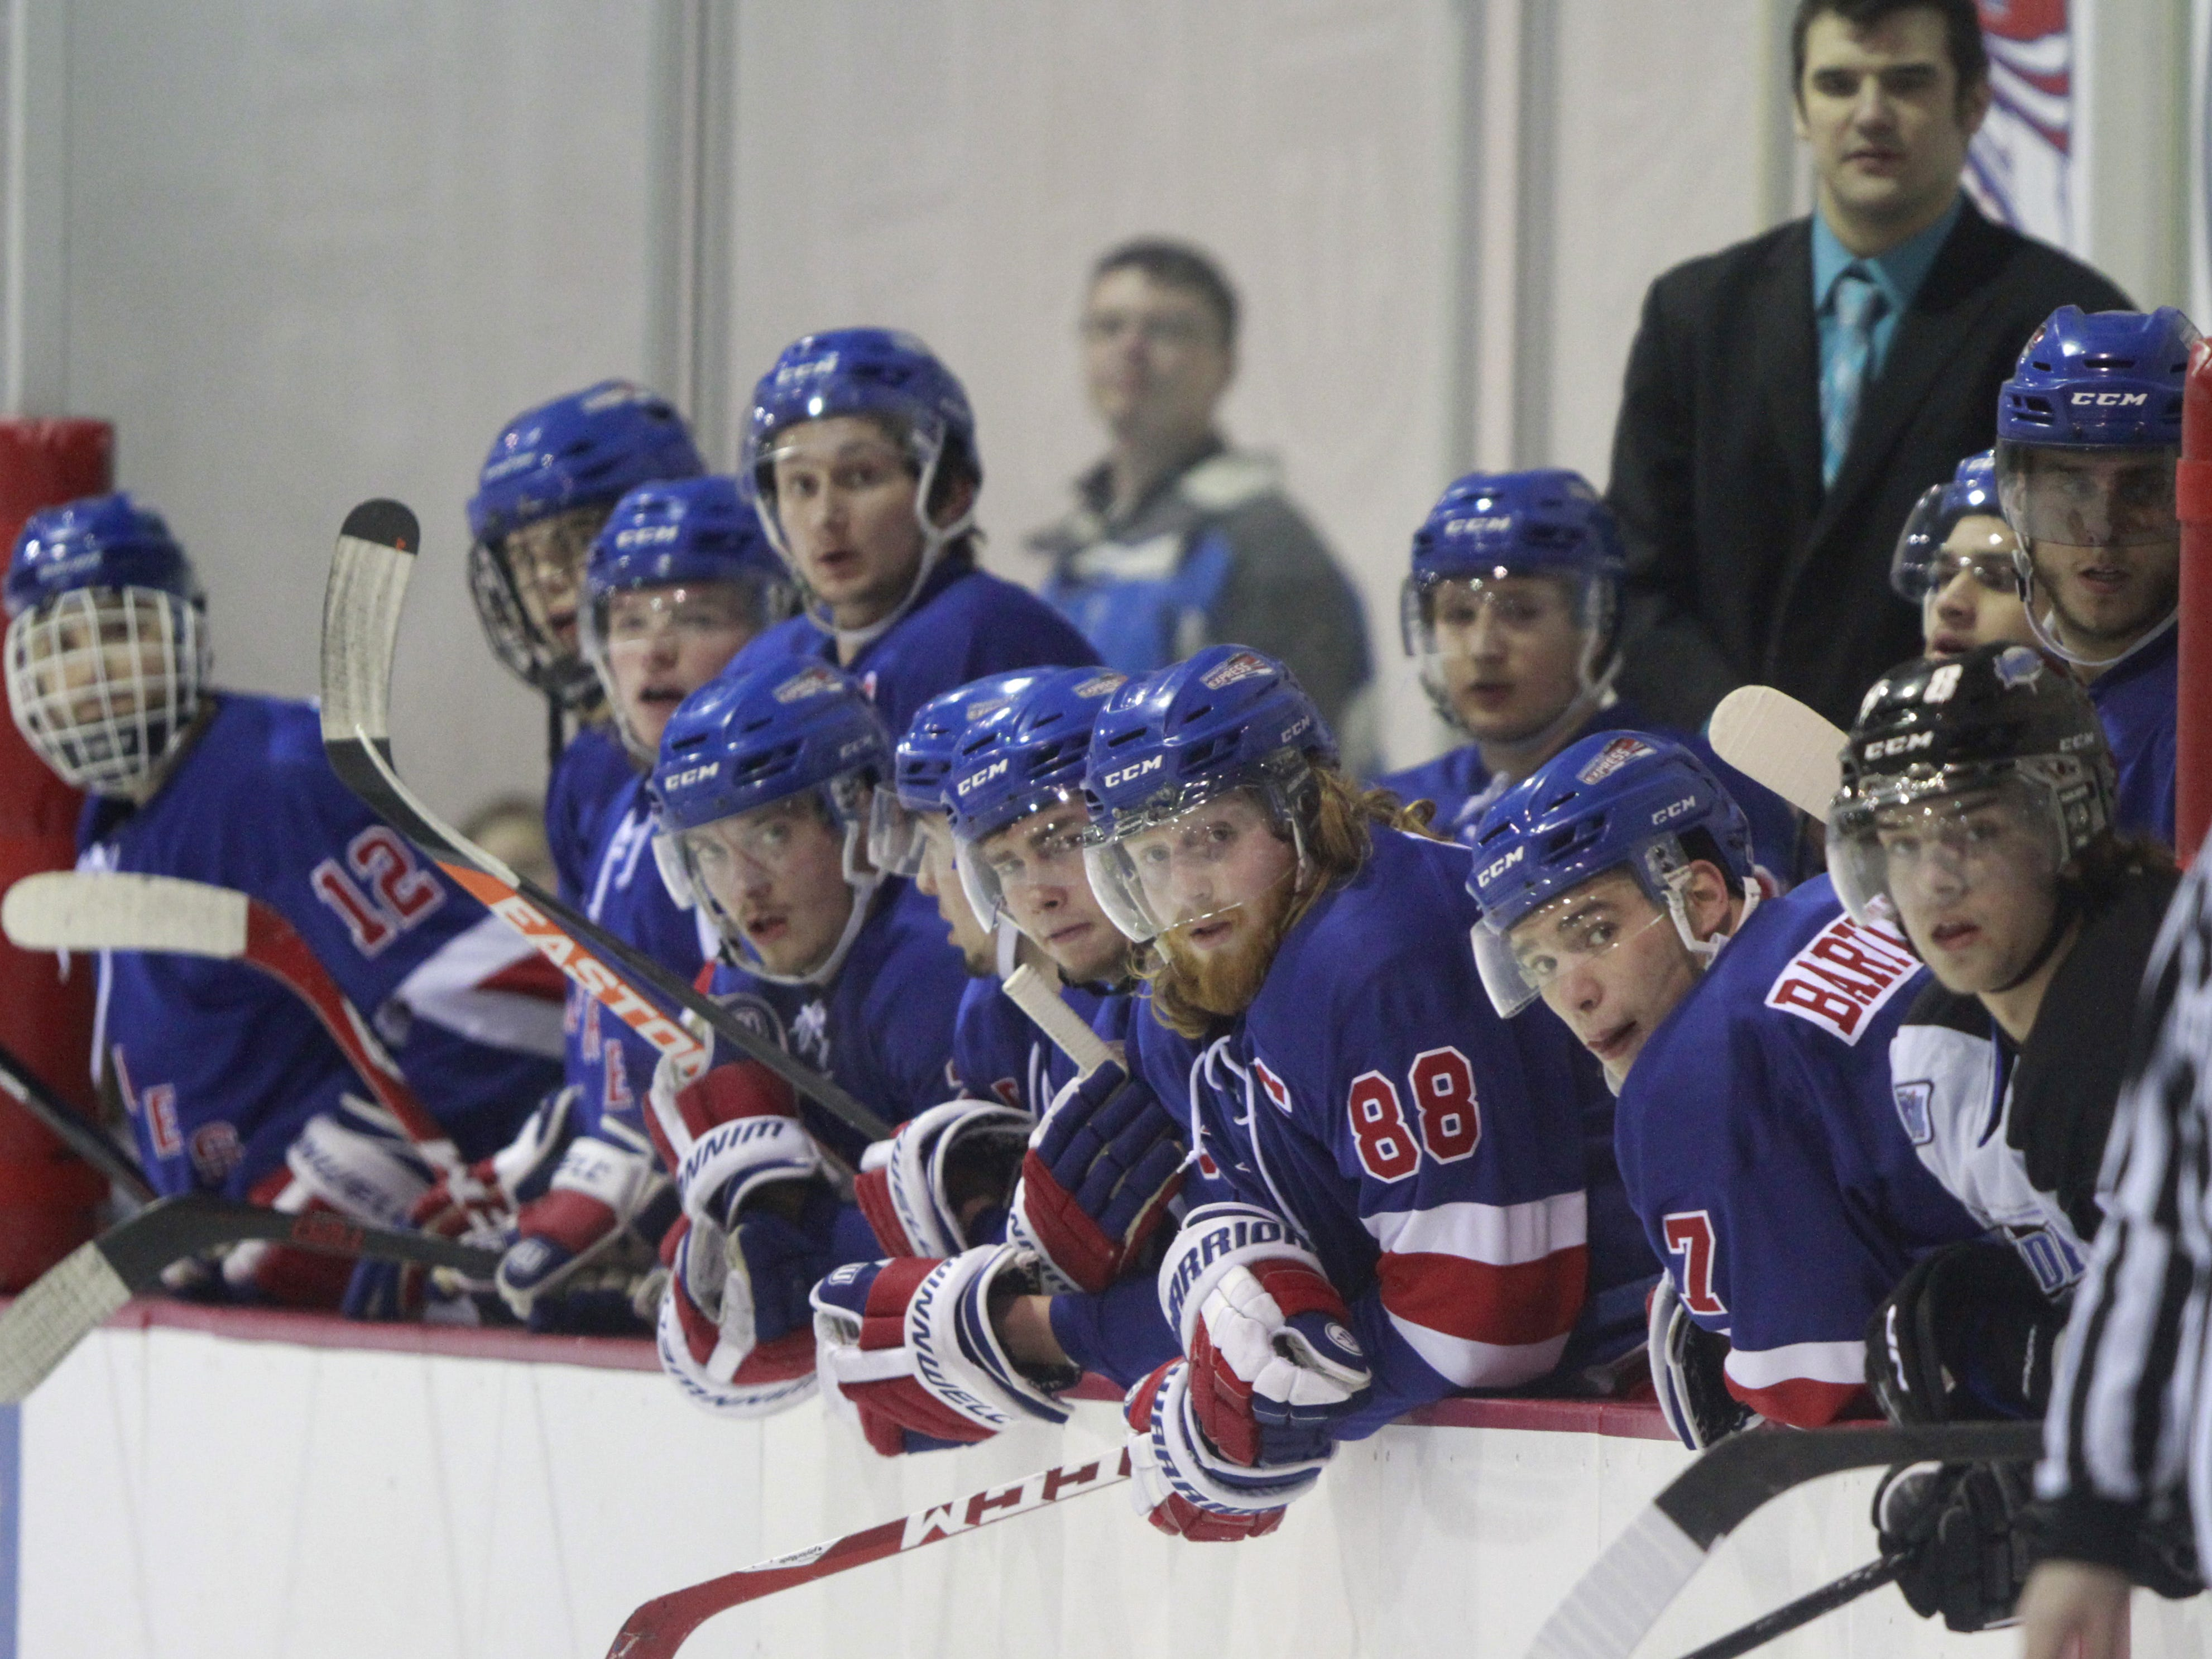 Hockey players on the Springfield Express watch from the bench during a game against the Wichita Jr. Thunder at the Mediacom Ice Park on Friday, Feb. 13, 2015.